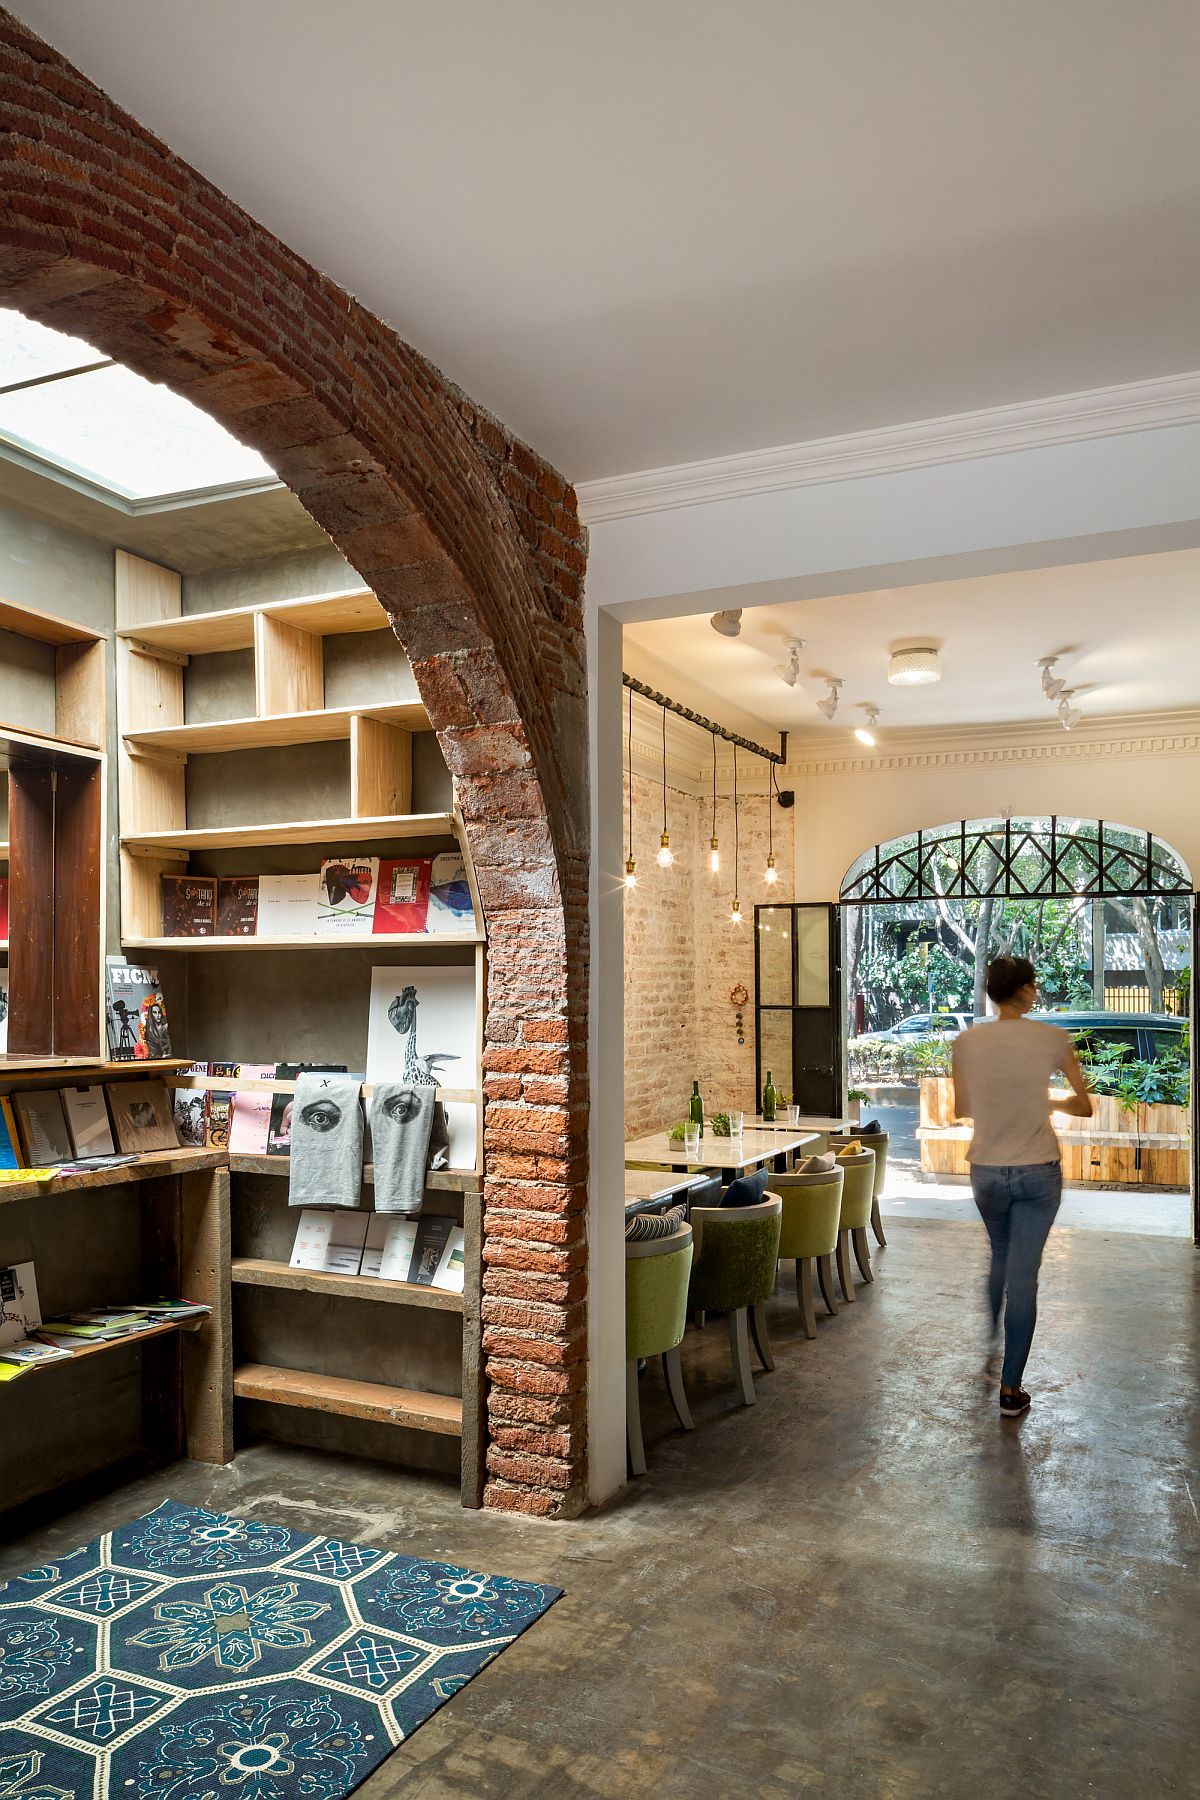 Bookstore inside the unique restaurant in Mexico City